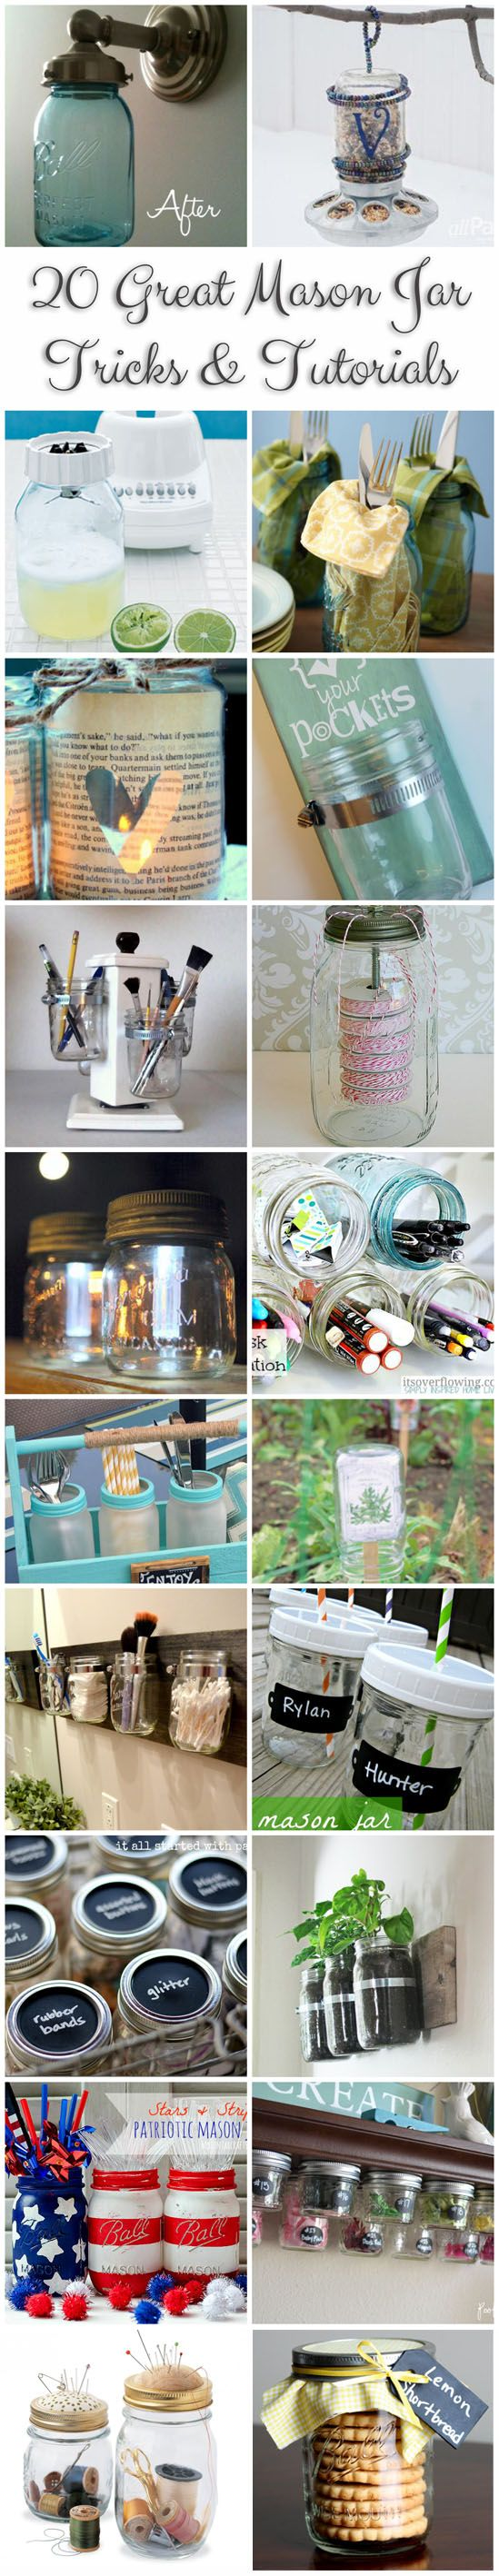 20 Mason Jar Tips & Tutorials